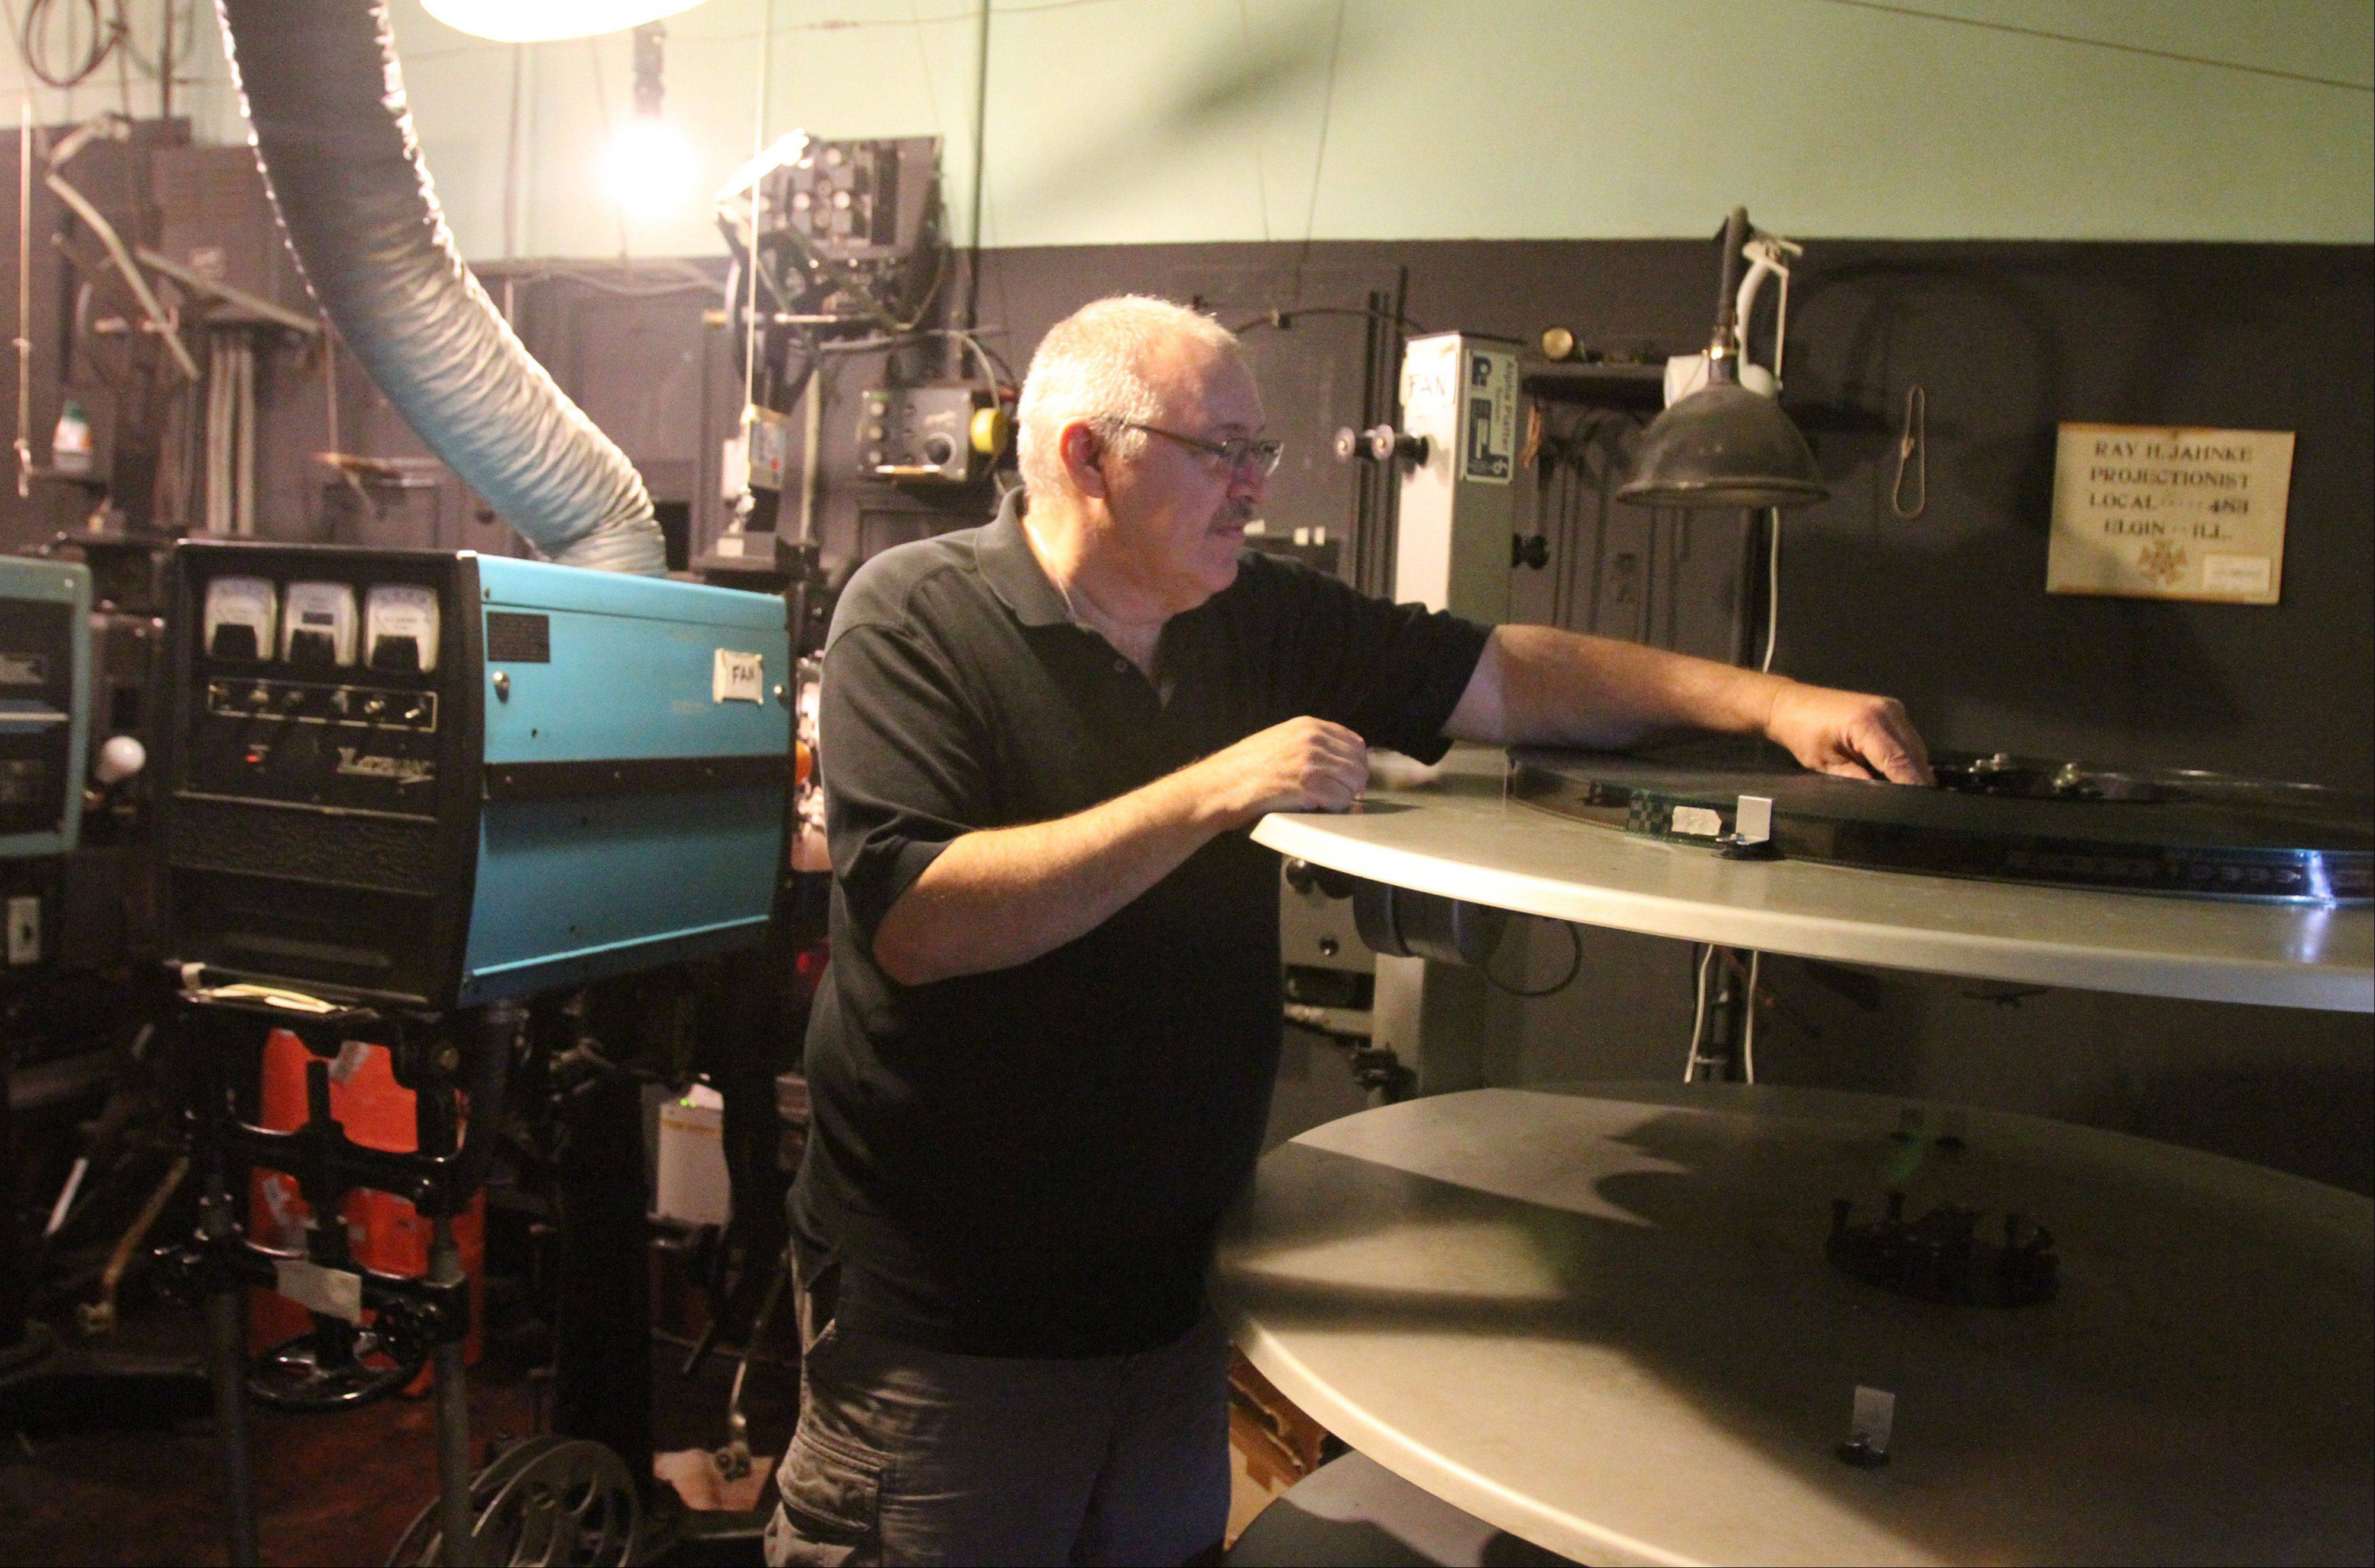 Catlow theater co-owner Tim O'Connor demonstrates how movie film is currently loaded onto a giant reel table that is then fed into the mid-20th century Simplex XL film projector at the theater in Barrington. O'Connor said that allows the film projector operator to show the film as one piece versus holding a new reel one-third of the way through a movie.